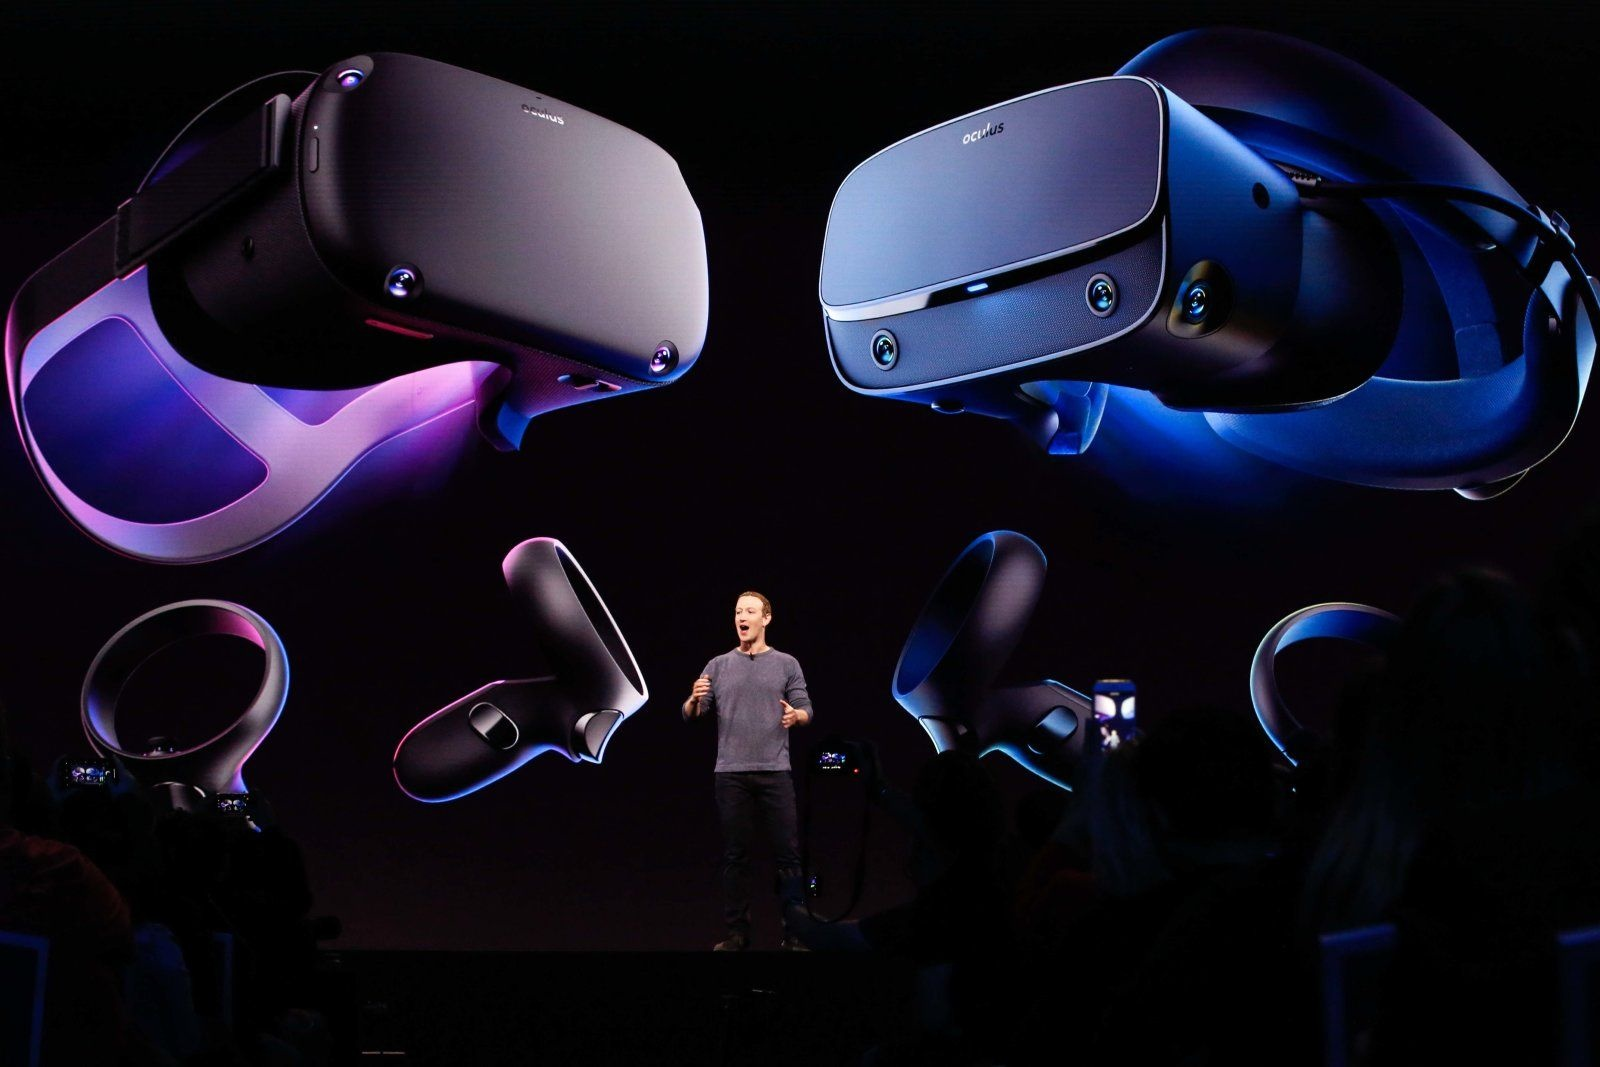 Oculus VR will soon require gamers to log in via Facebook